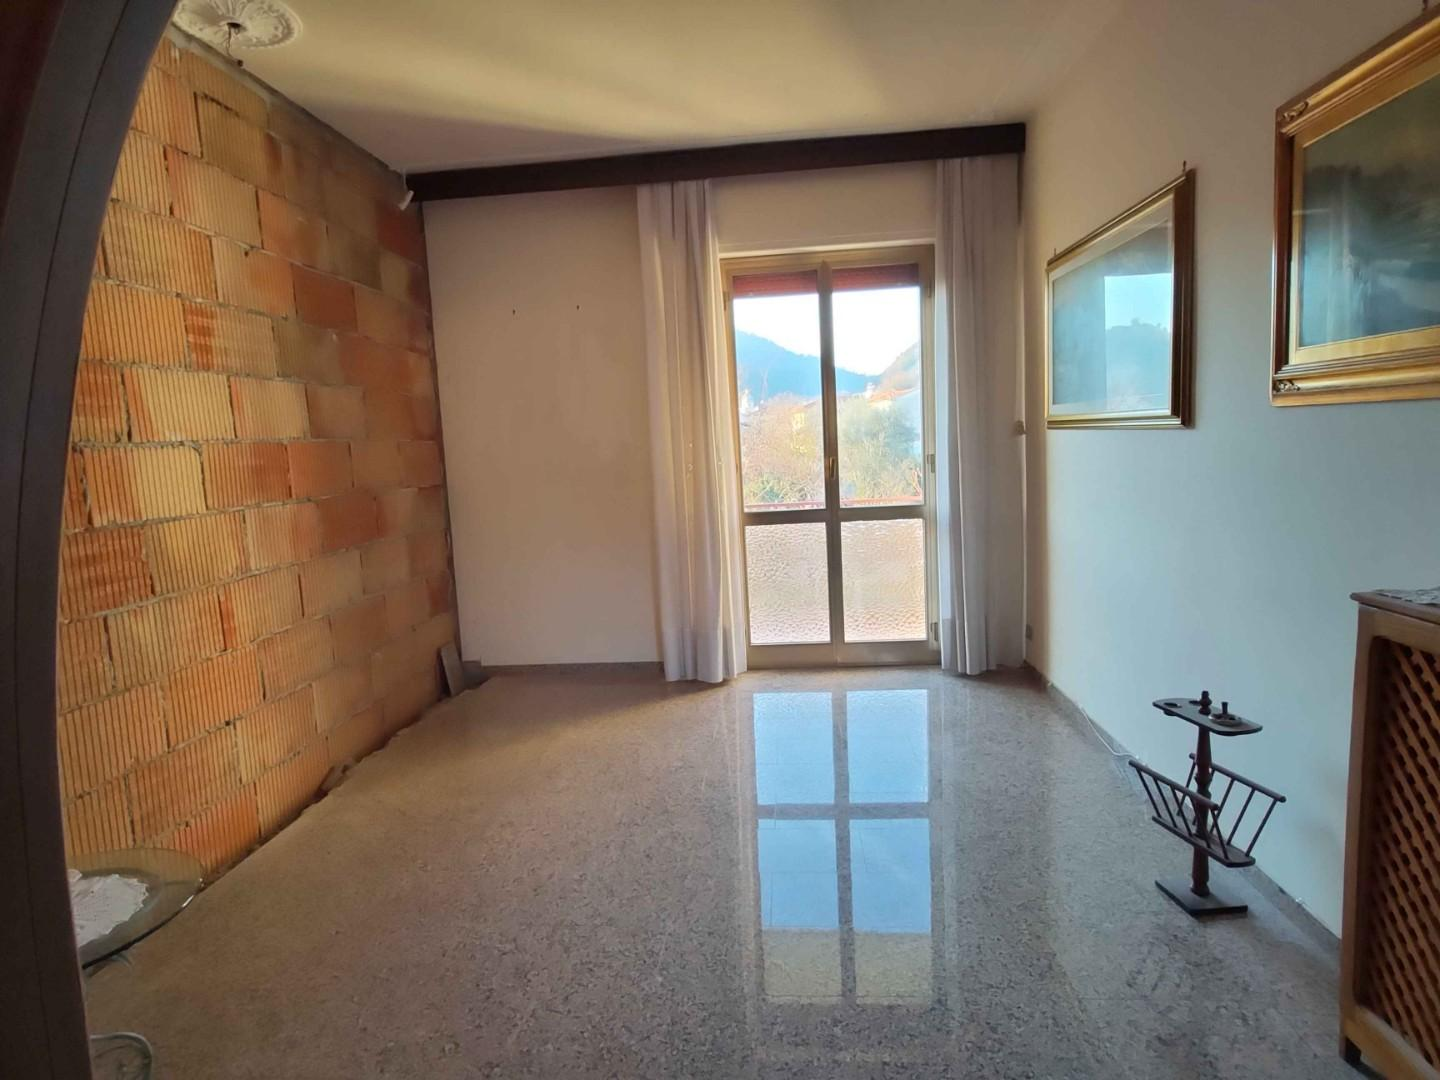 Semi-detached house for sell, ref. 609